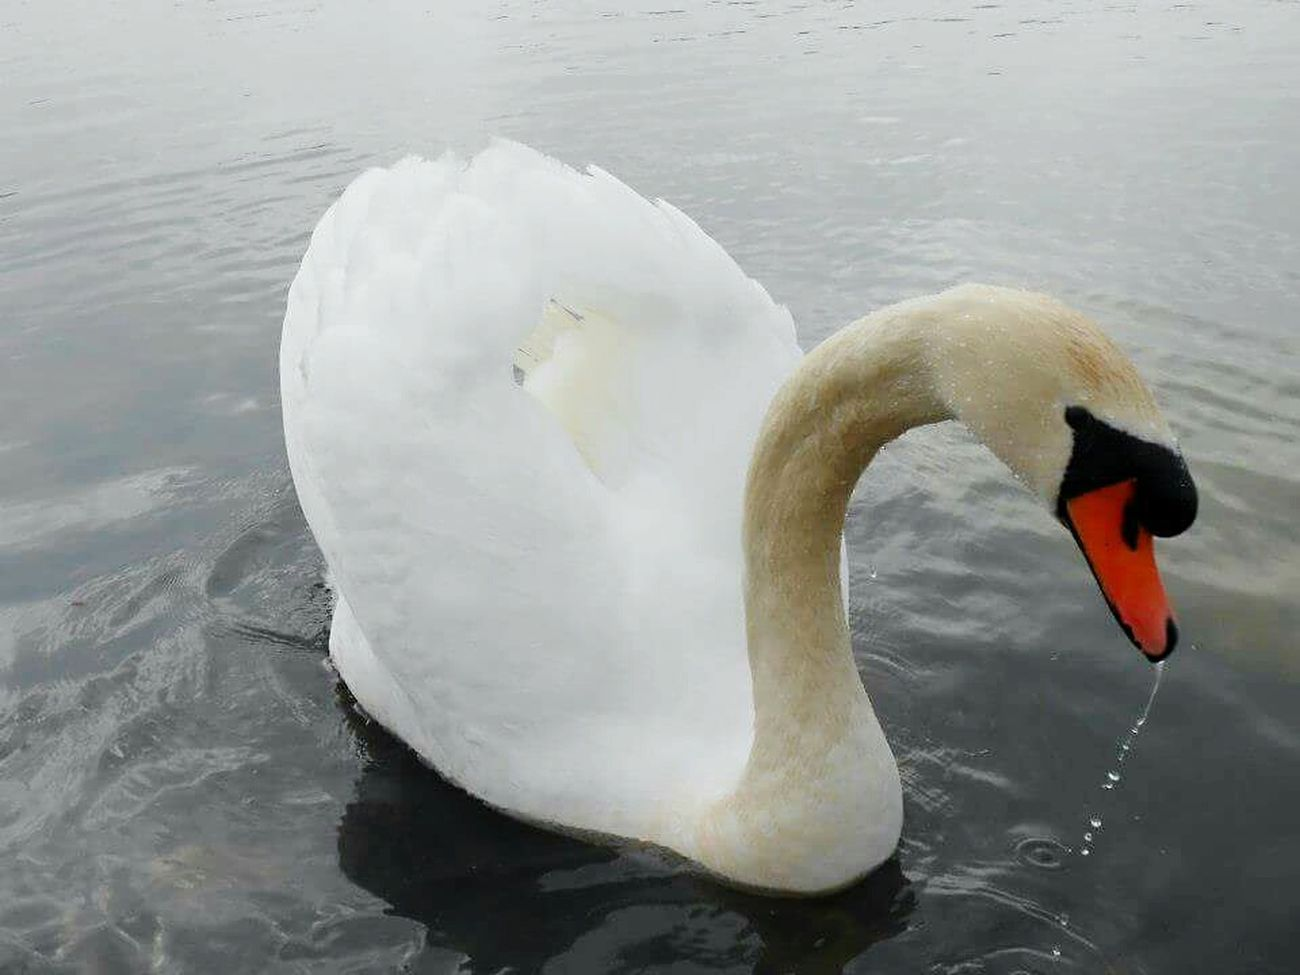 Swan Prince  Beautiful Creatures Taking Pictures Eye4photography  Lake Water Water Reflections EyeEm Animal Lover Swans On The Lake Beautiful Nature Pure White Winter Moments Bourges, France Close-up Posing Angel Wings Water Angel Taking Photos Animals In The Wild Reflection_collection Nature_collection Animal Photography Animals